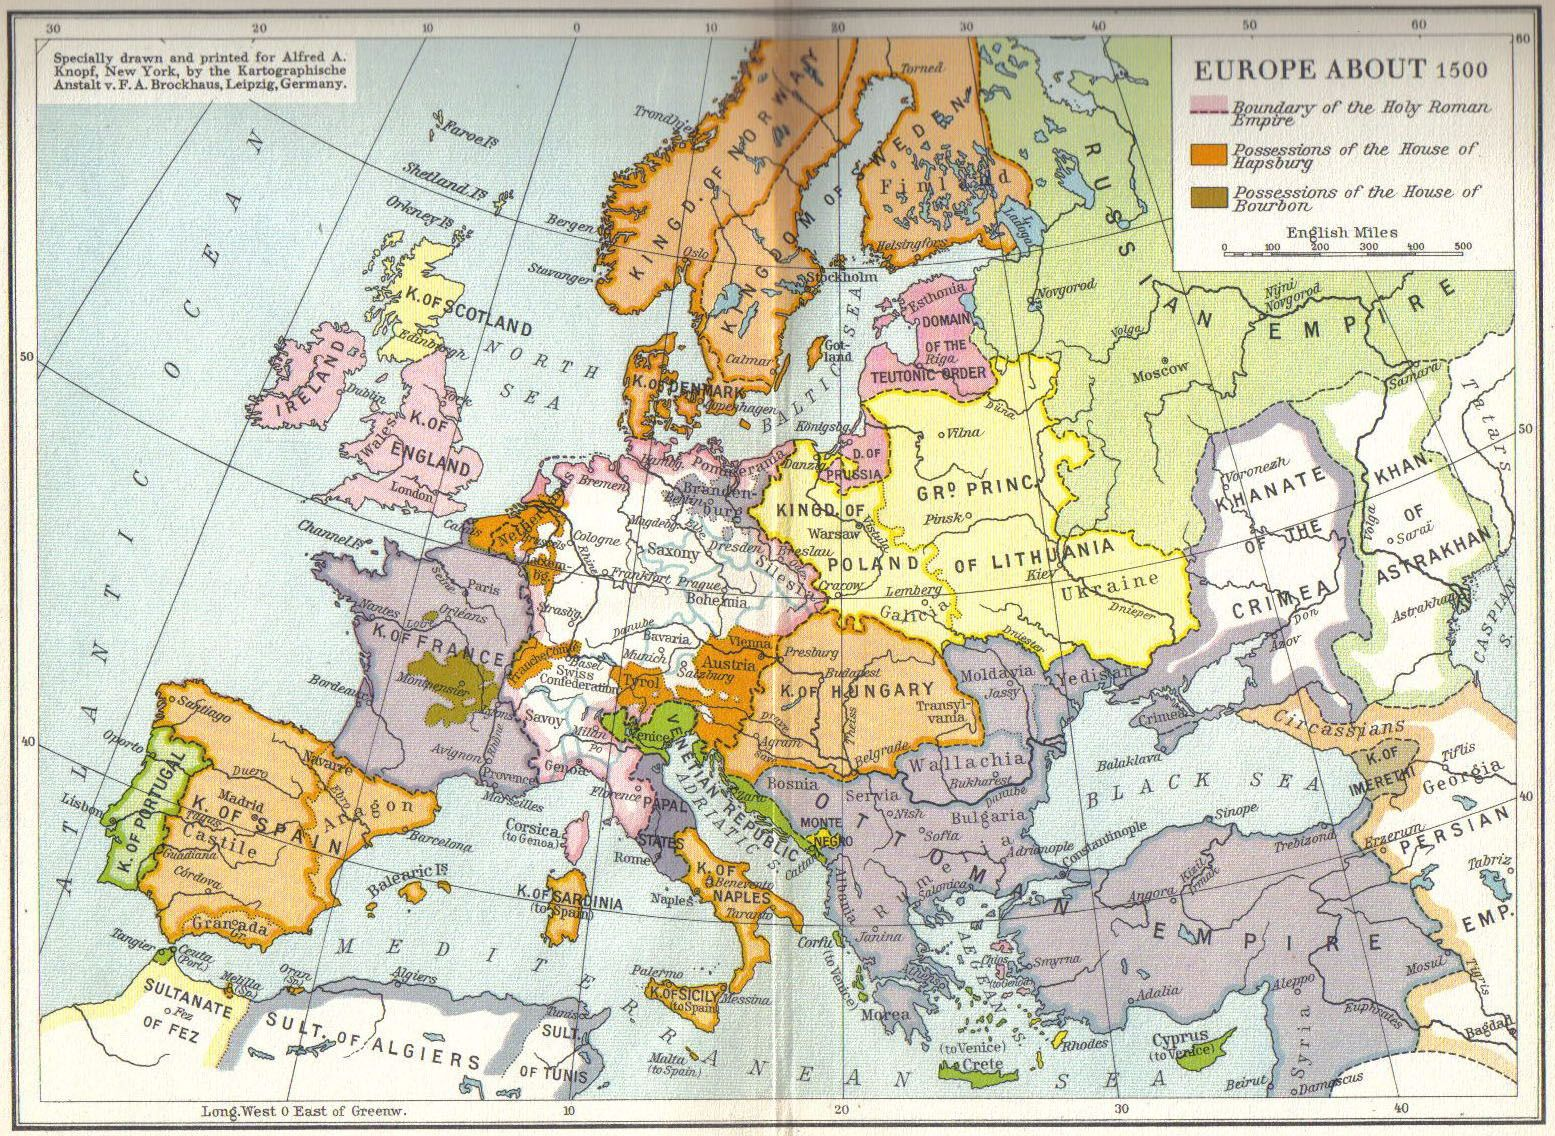 Superb MAP Of Europe C.1500.